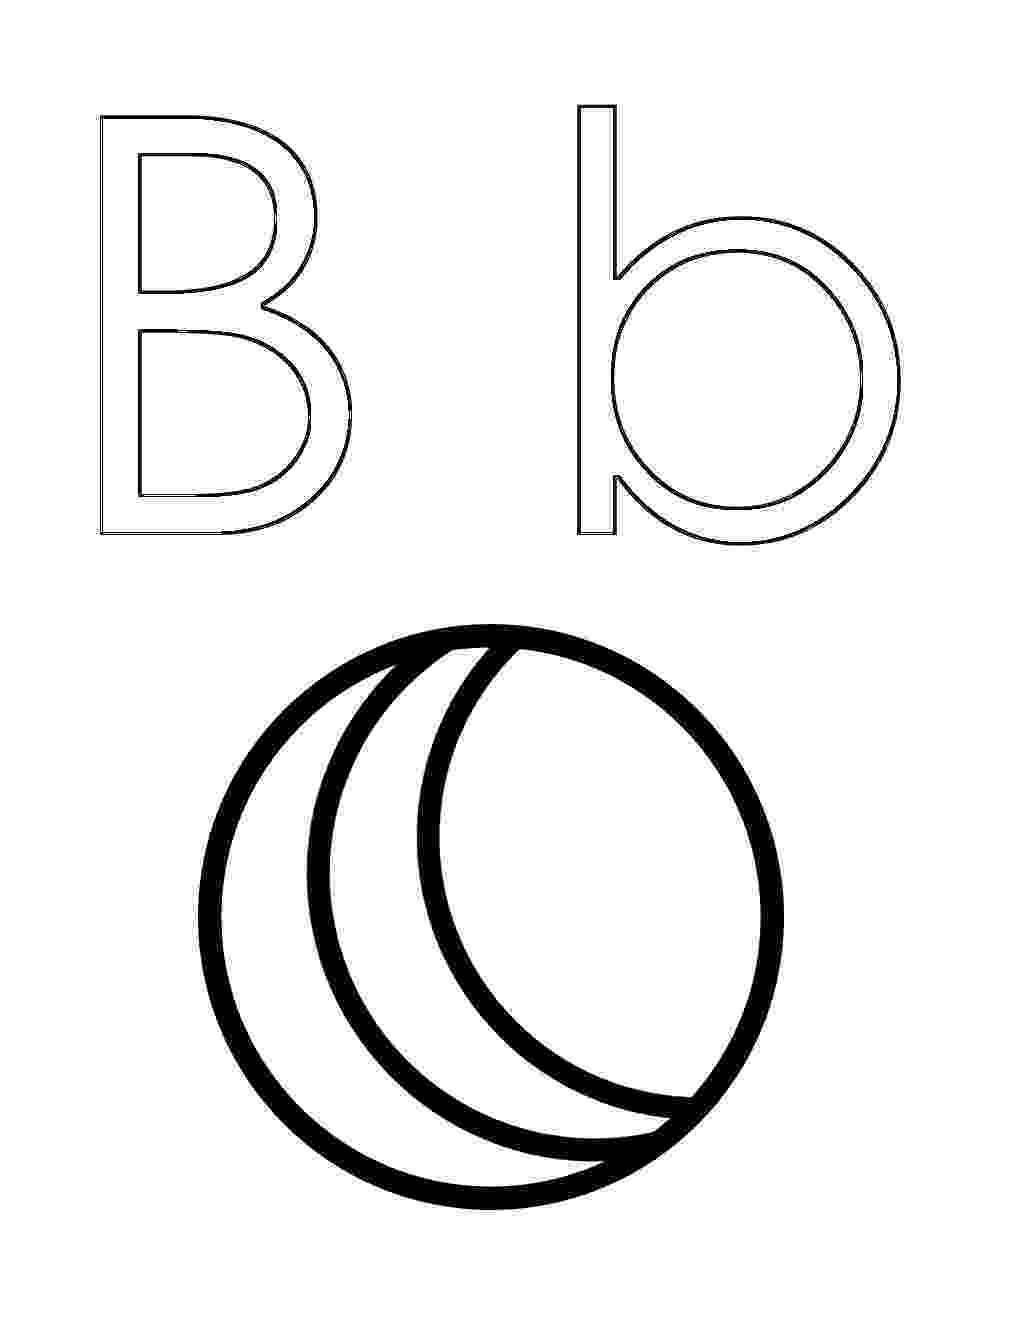 b for ball coloring page beach ball coloring pages clipartsco june preschool page b for coloring ball